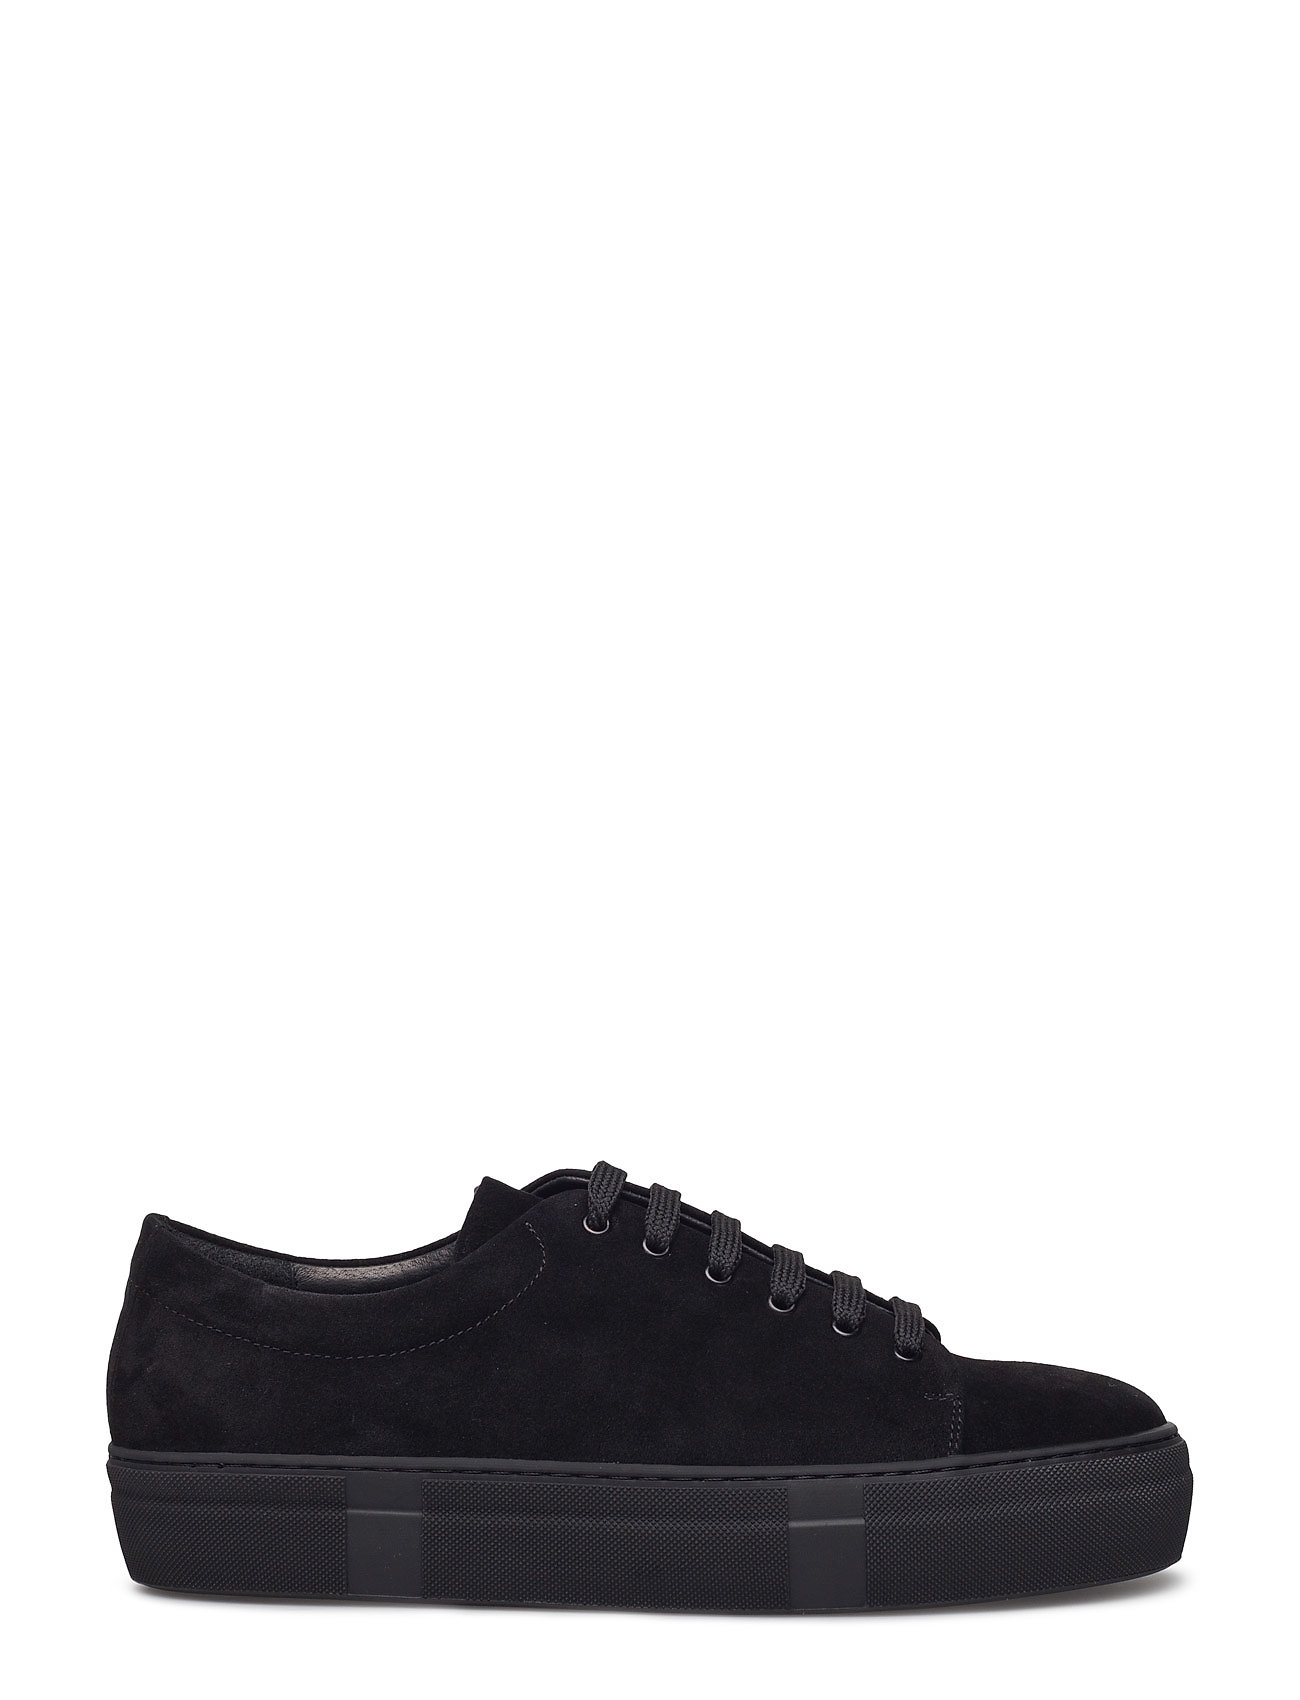 Sid Sneaker Hope Sneakers til Herrer i Sort